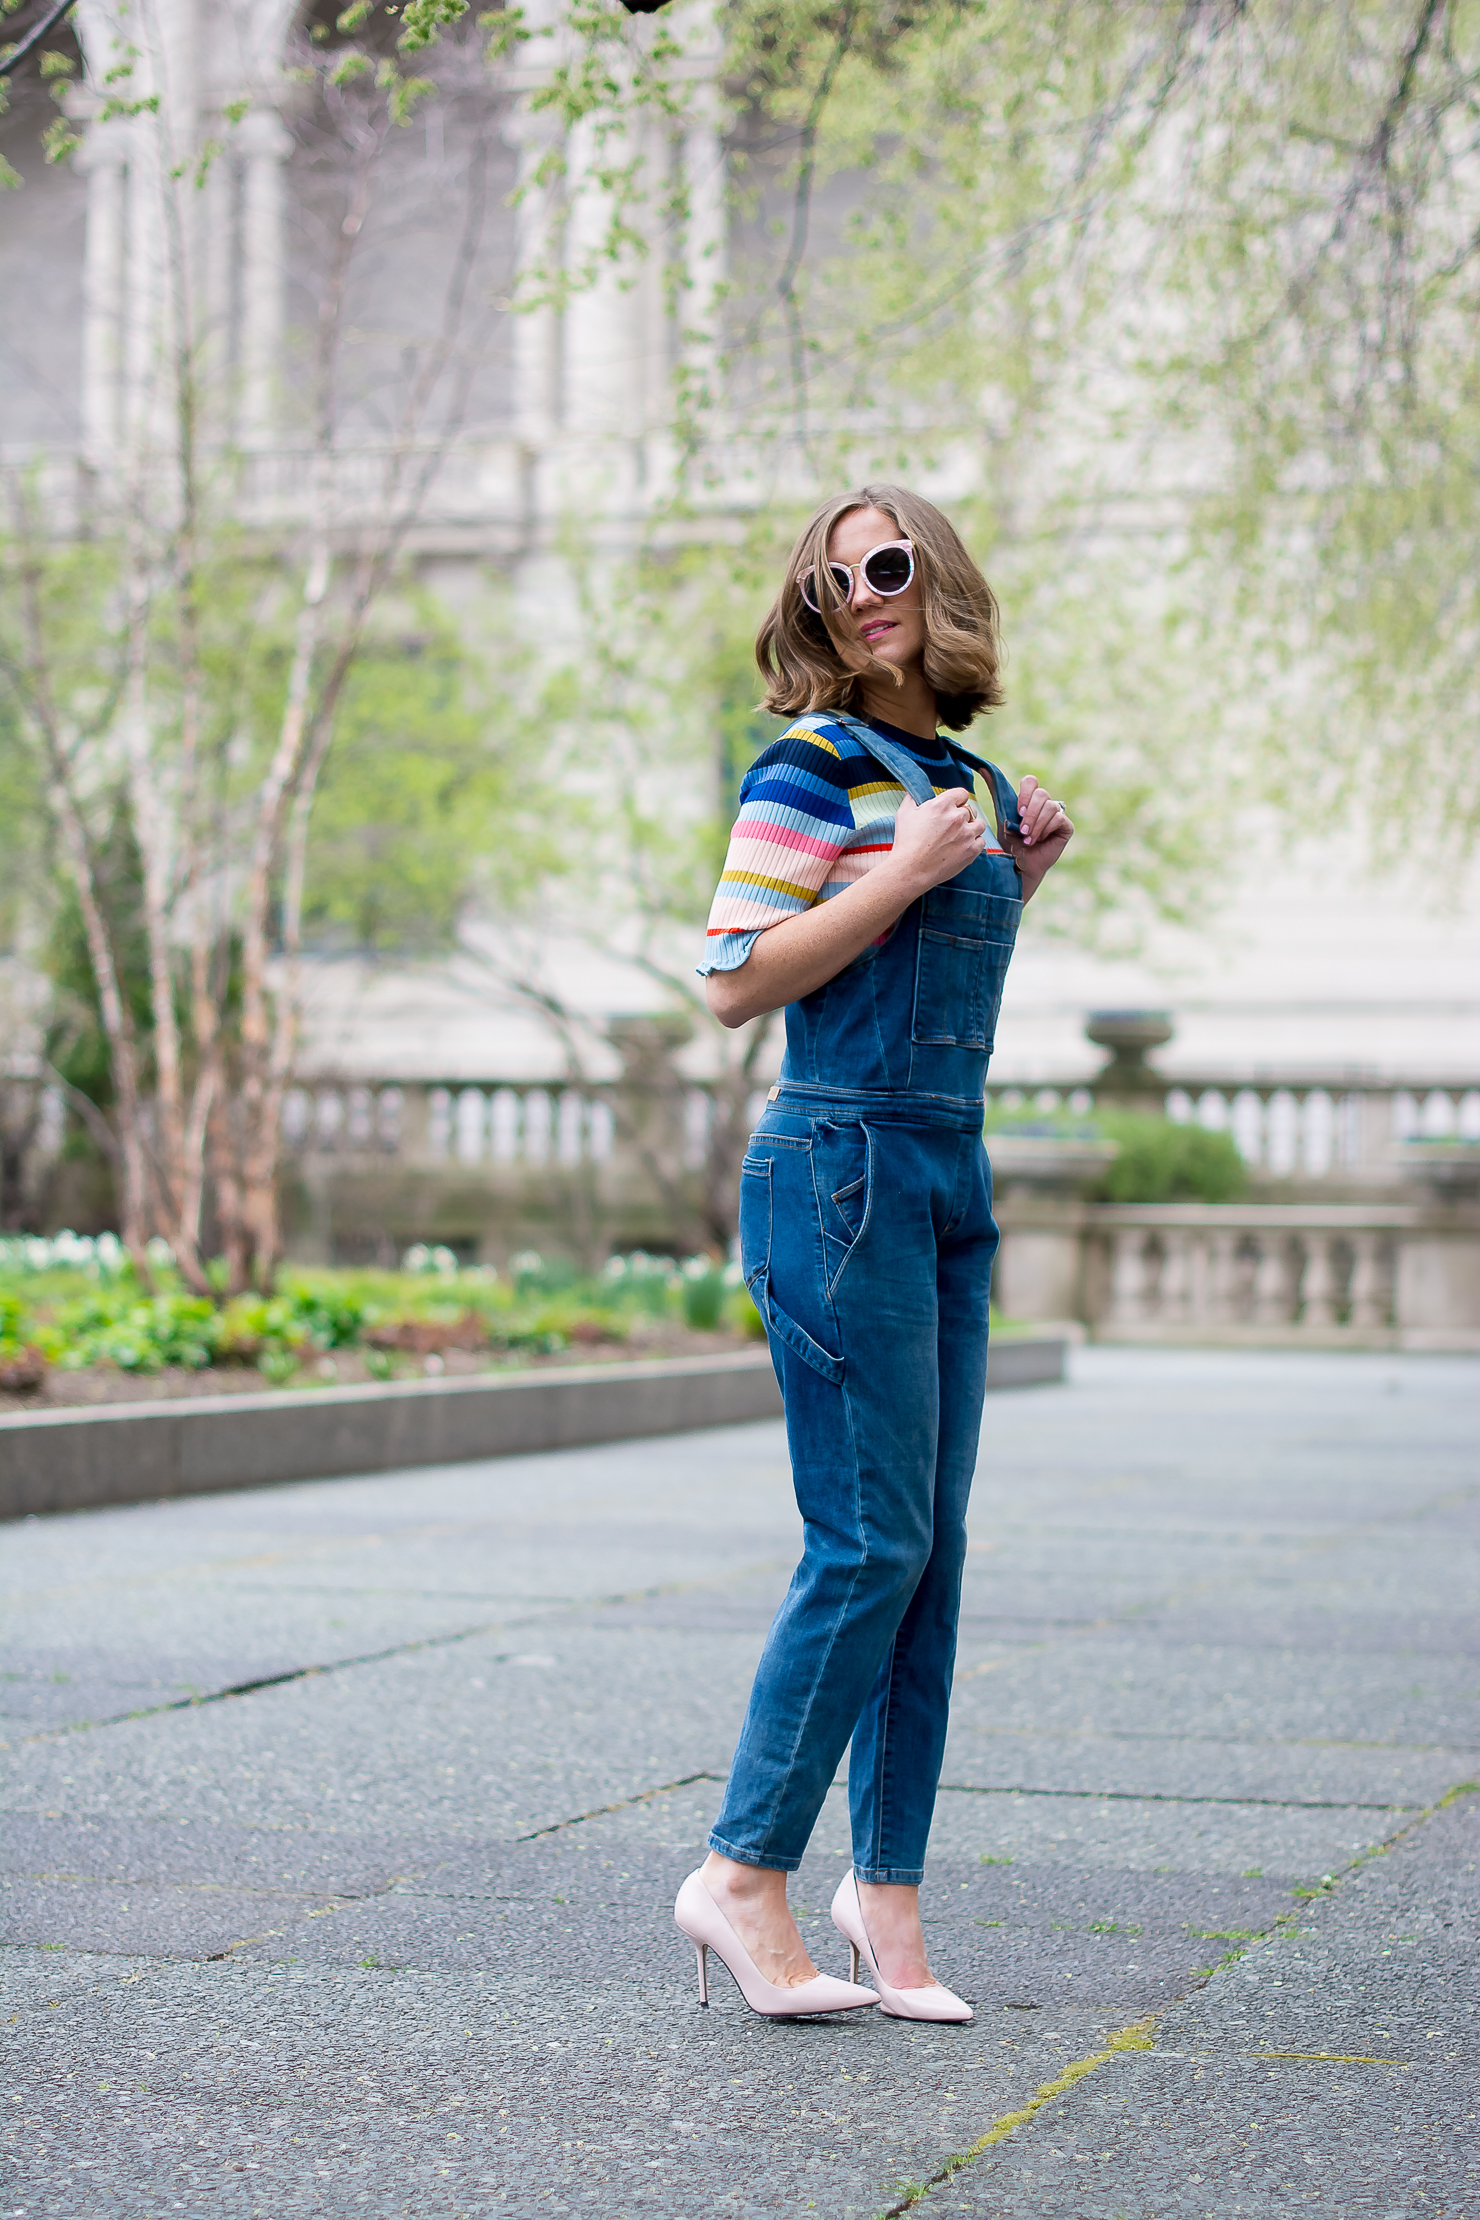 blank-nyc-skinny-overalls-h&m-rib-knit-multicolor-striped-top-zara-blush-court-heels-forever-21-pink-marble-sunglasses-the-art-institute-of-chicago